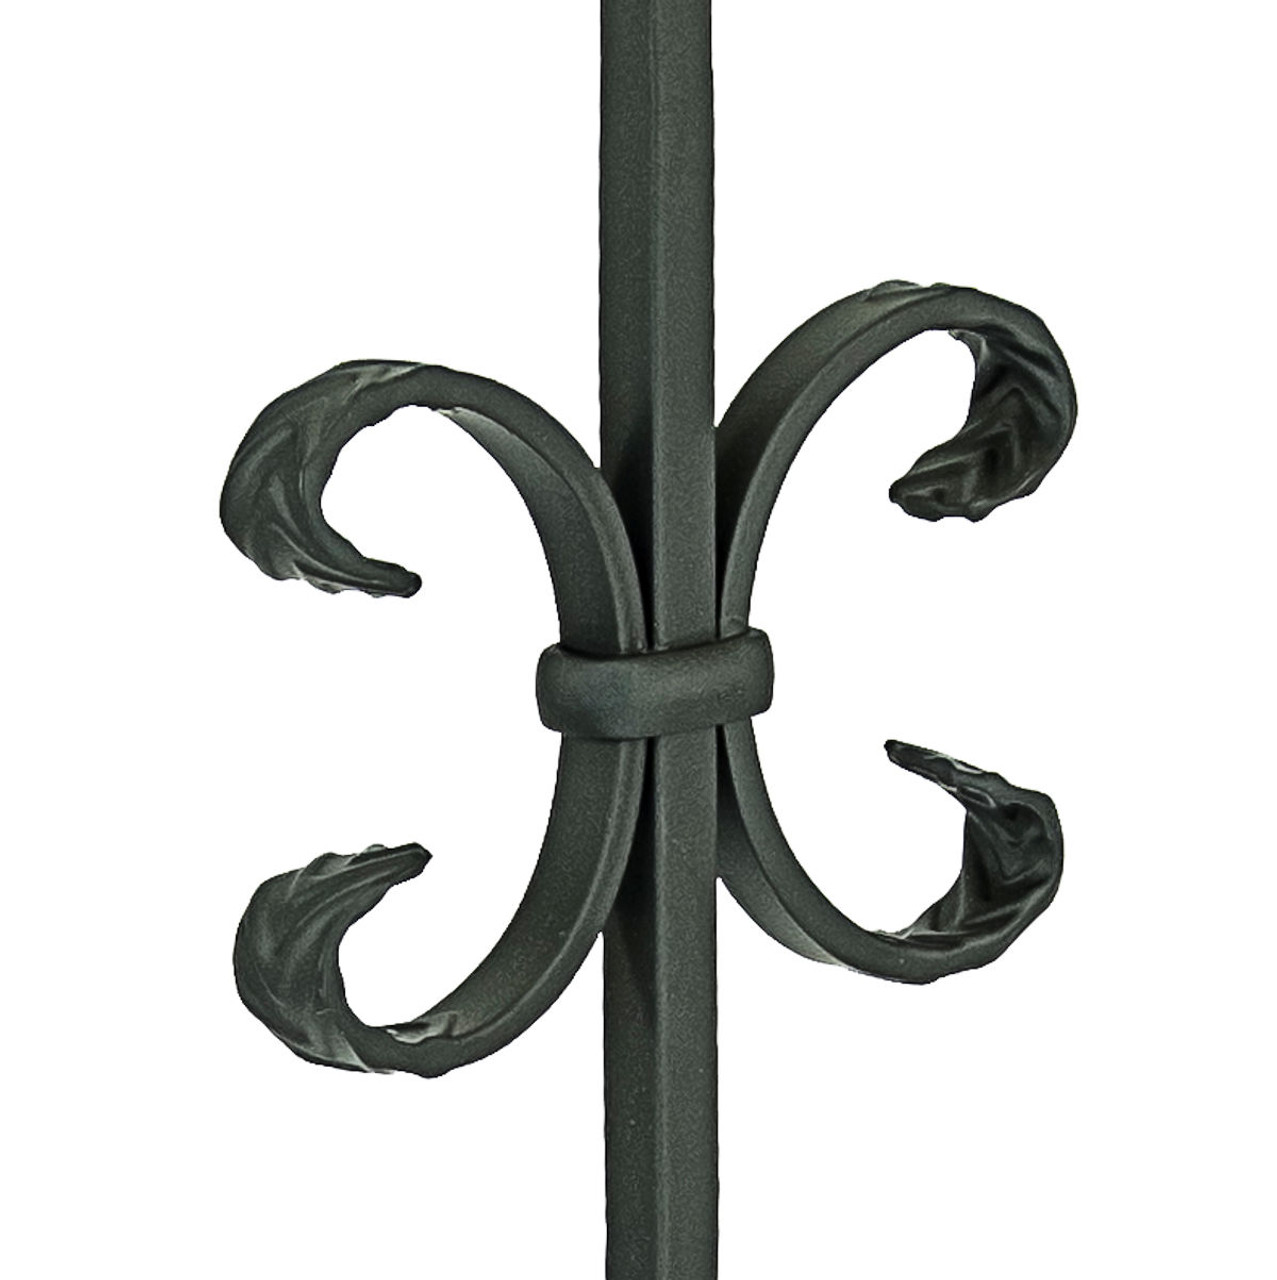 T-11 Double Butterfly, Single Ribbon, Tubular Steel Close Up (2)